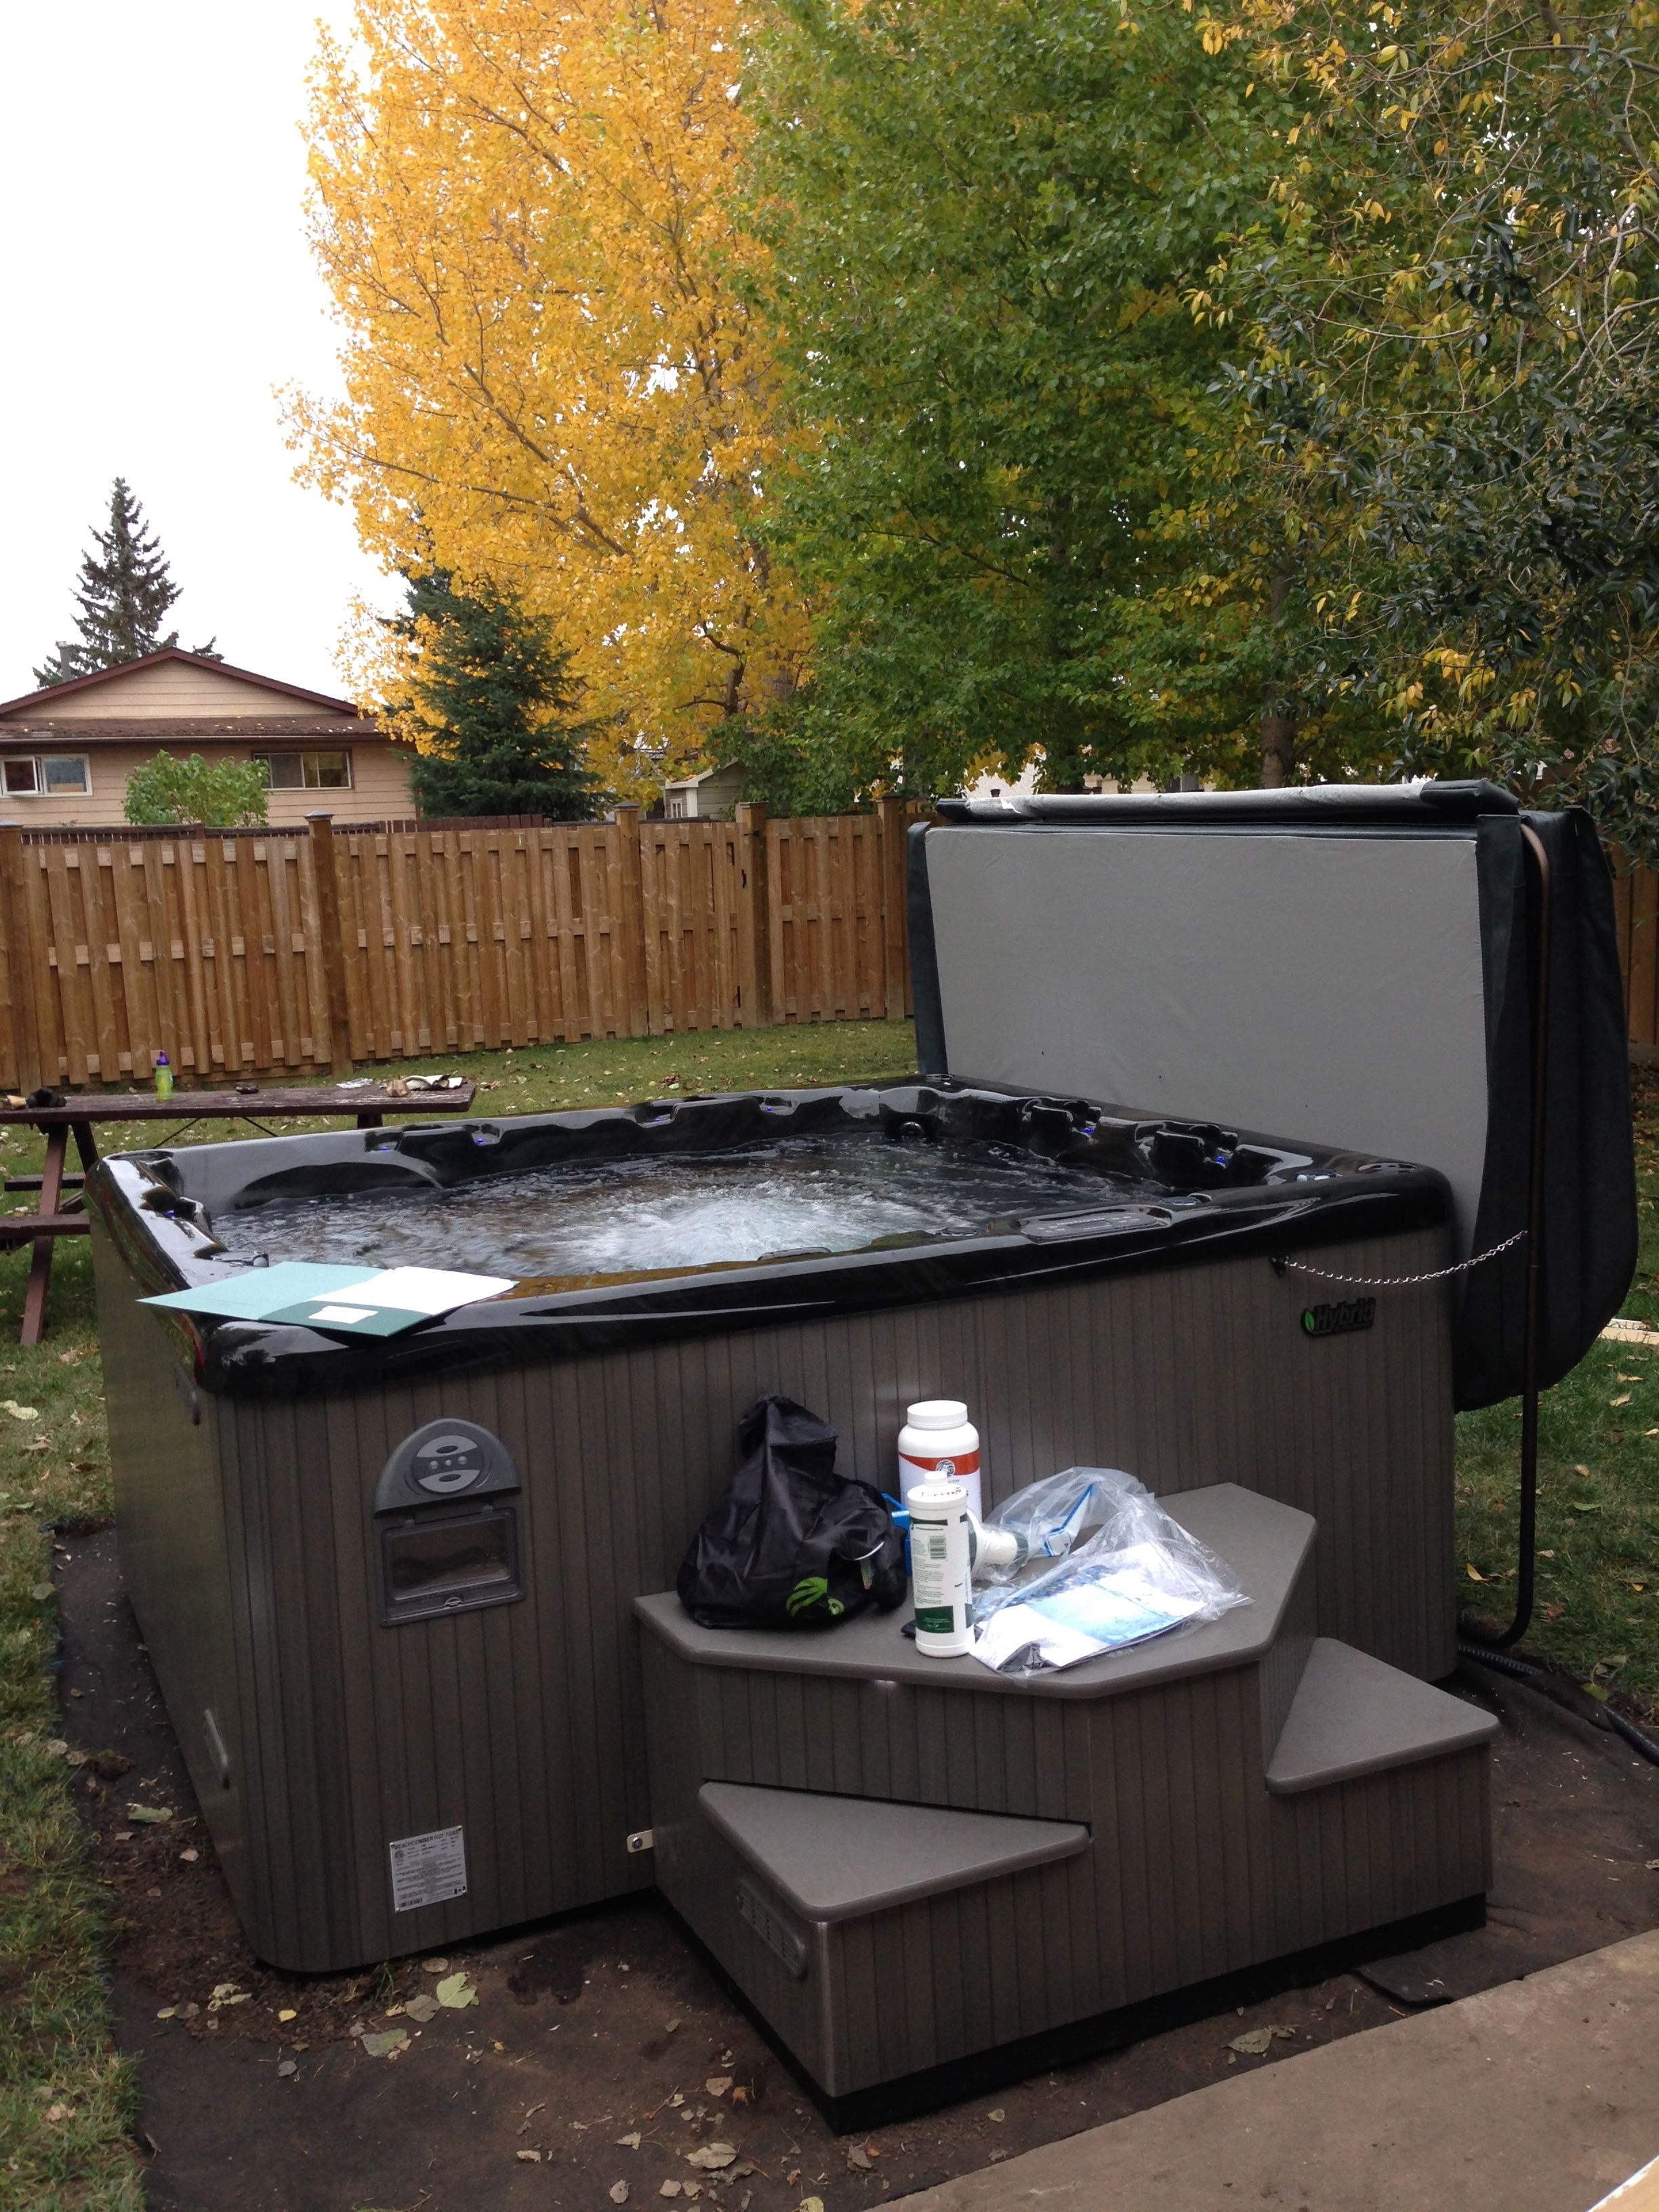 Beachcomber Hot Tubs - Manuals and Guides